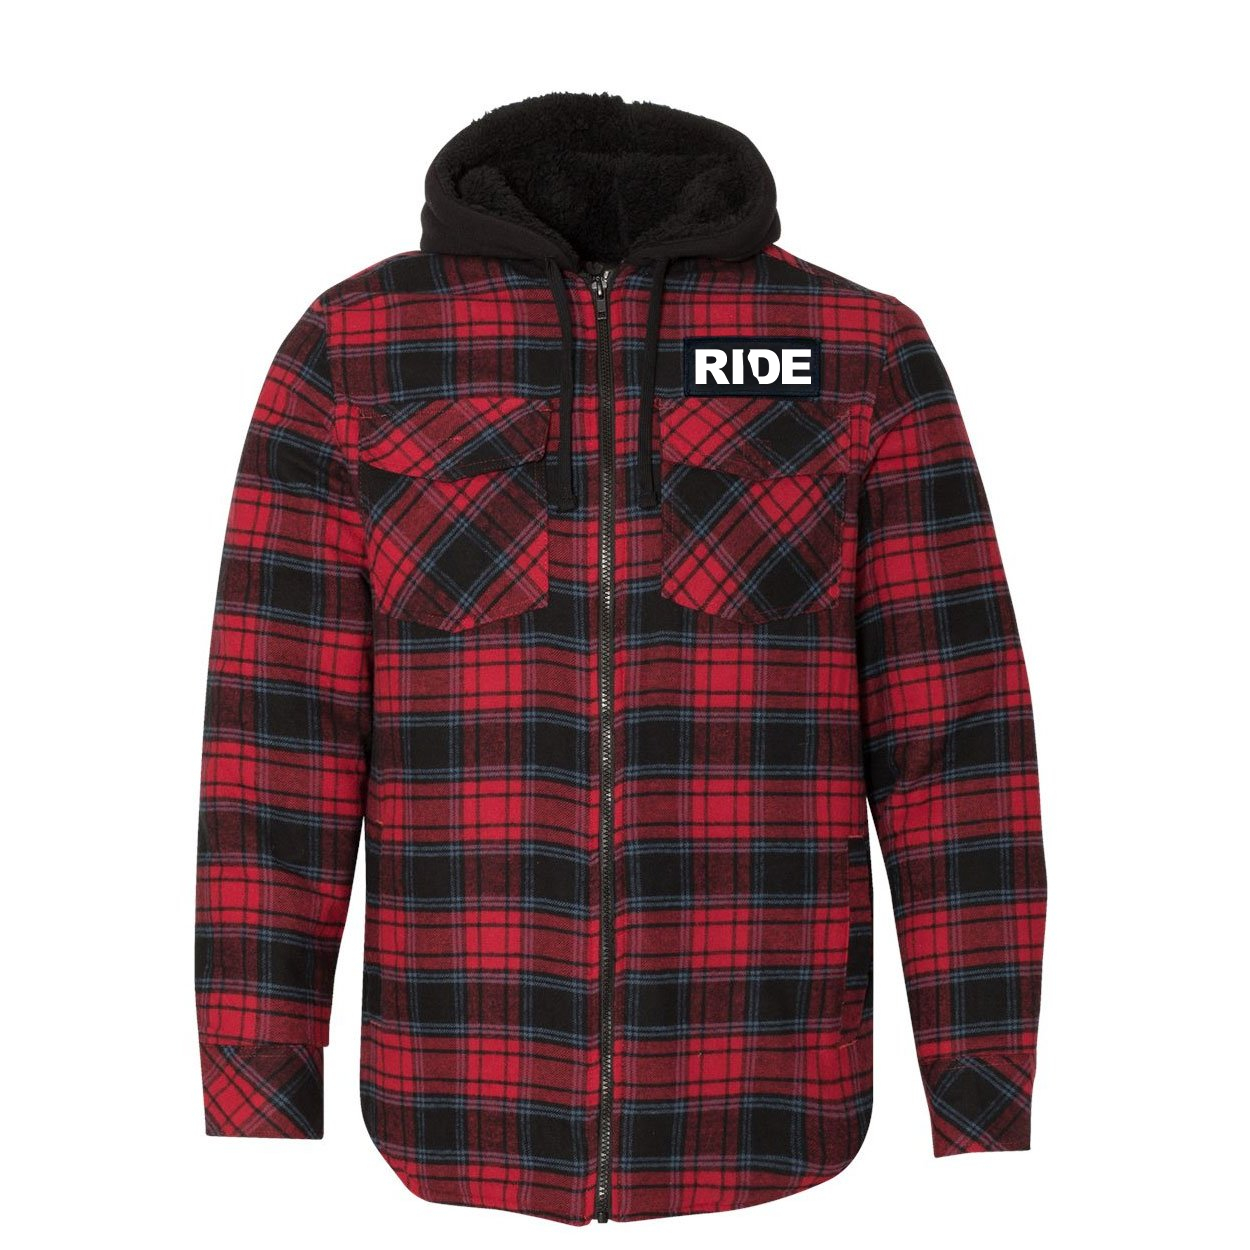 Ride Delaware Classic Unisex Full Zip Woven Patch Hooded Flannel Jacket Red/Black Buffalo (White Logo)